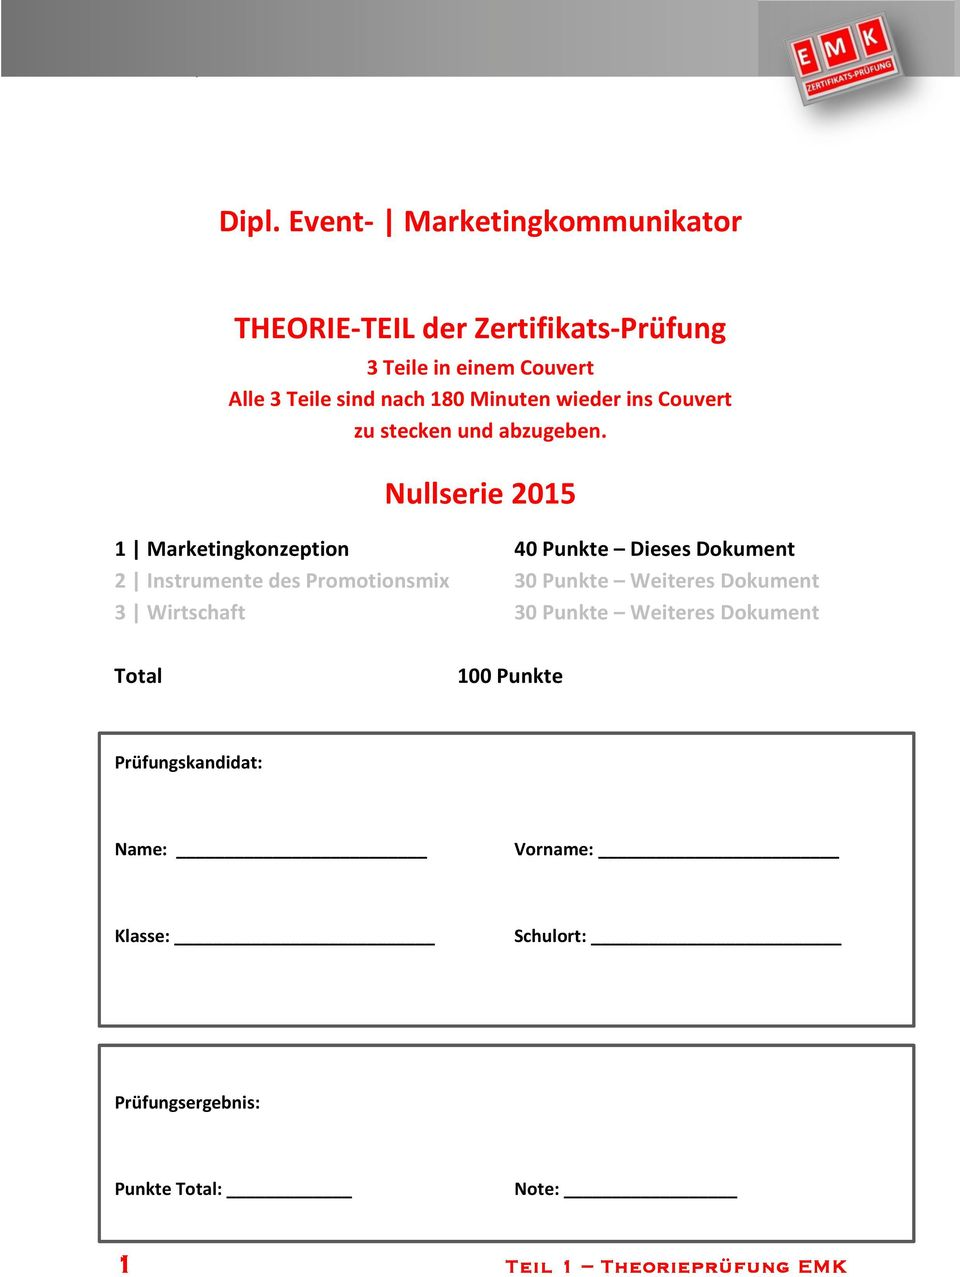 Nullserie 205 Marketingkonzeption 40 Punkte Dieses Dokument 2 Instrumente des Promotionsmix 30 Punkte Weiteres